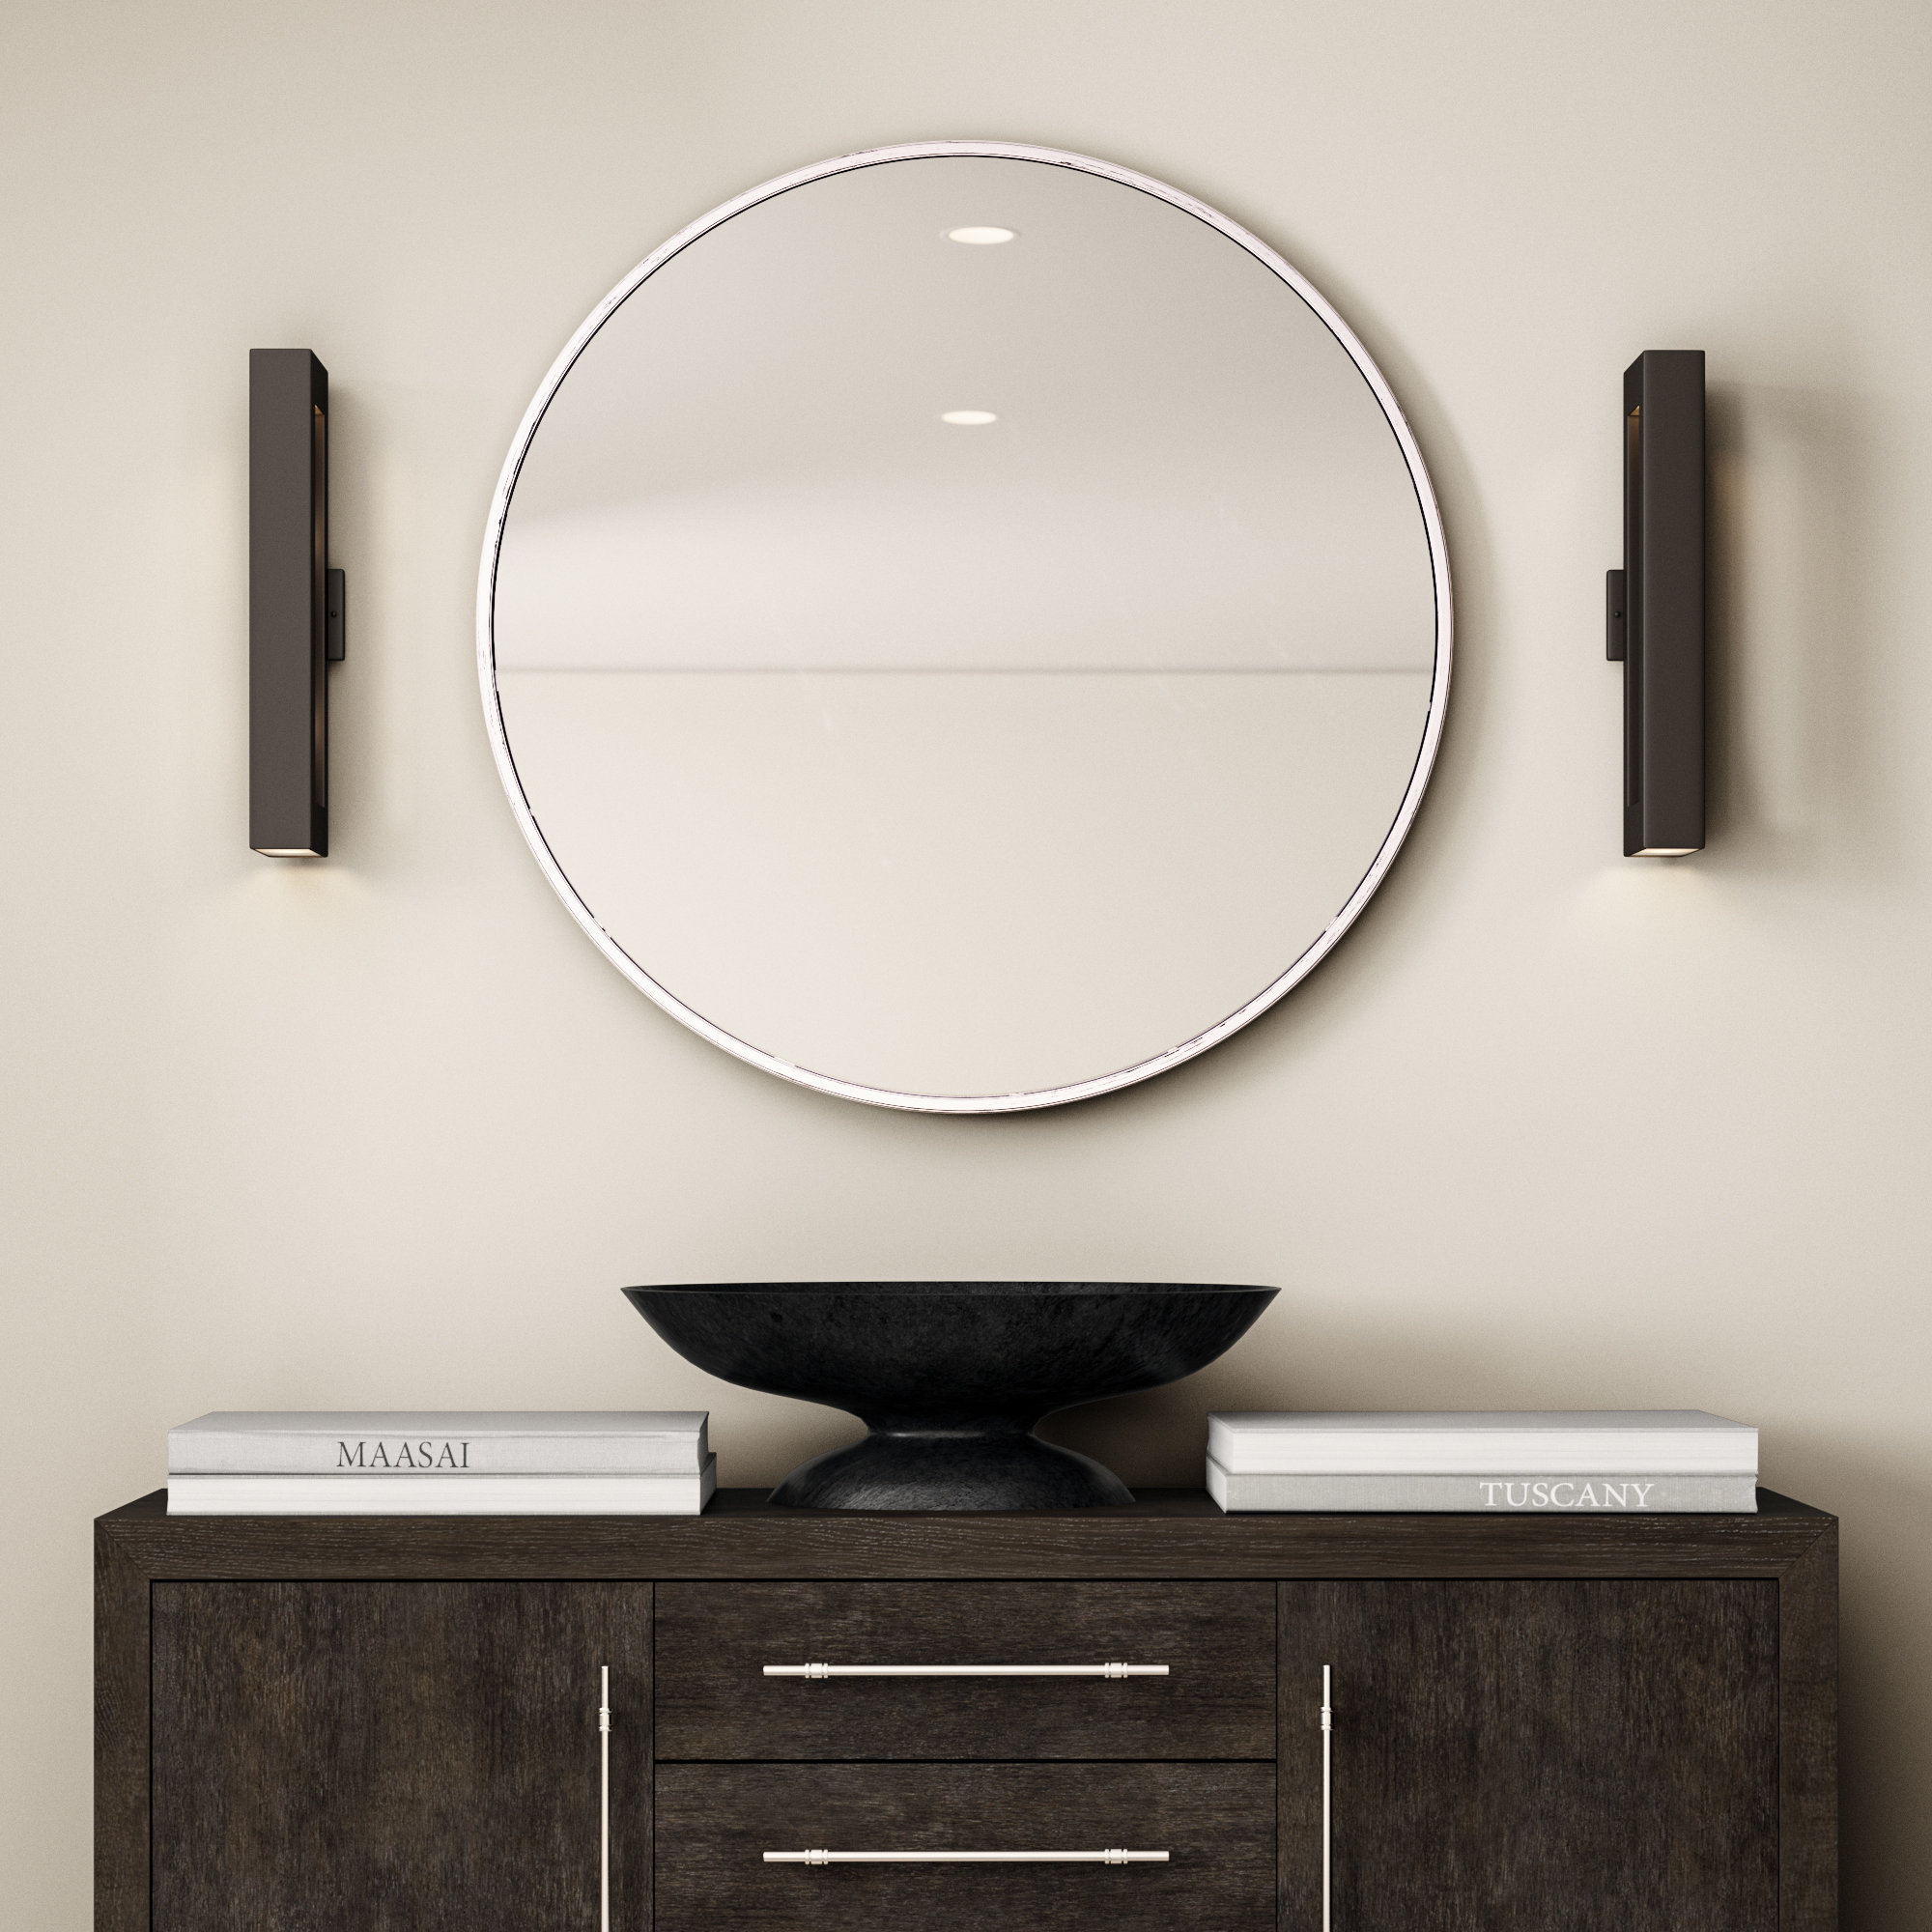 Needville Modern & Contemporary Accent Mirror With Regard To Gaunts Earthcott Modern & Contemporary Beveled Accent Mirrors (Image 17 of 20)